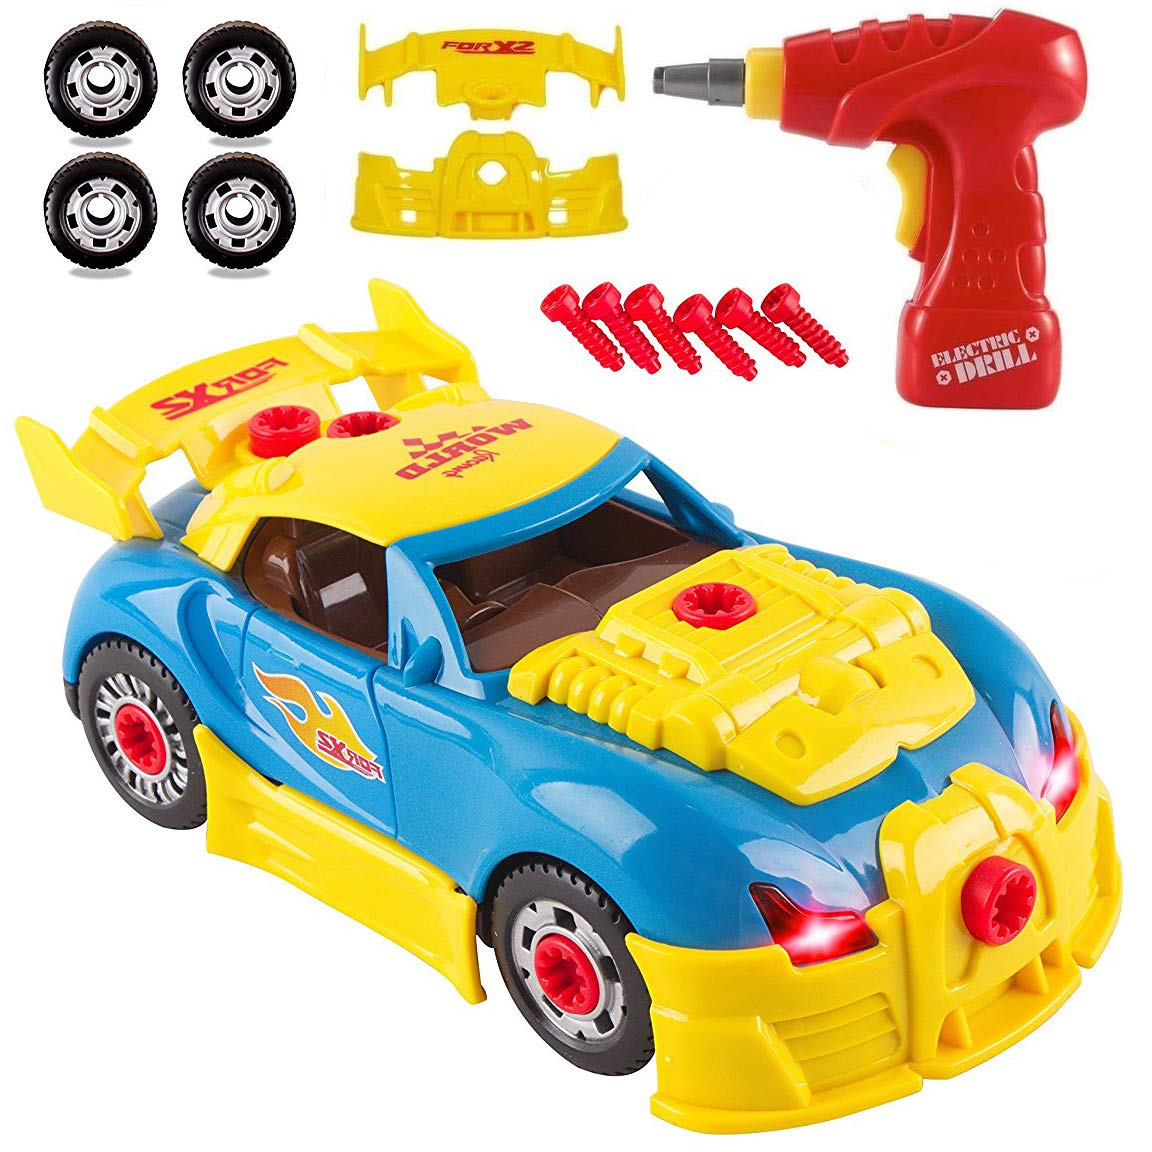 Liberty Imports Kids Take Apart Toys - Build Your Own Racing Vehicle Toy Construction Playset - Realistic Sounds and Lights with Tools and Power Drill (Race Car) by Liberty Imports